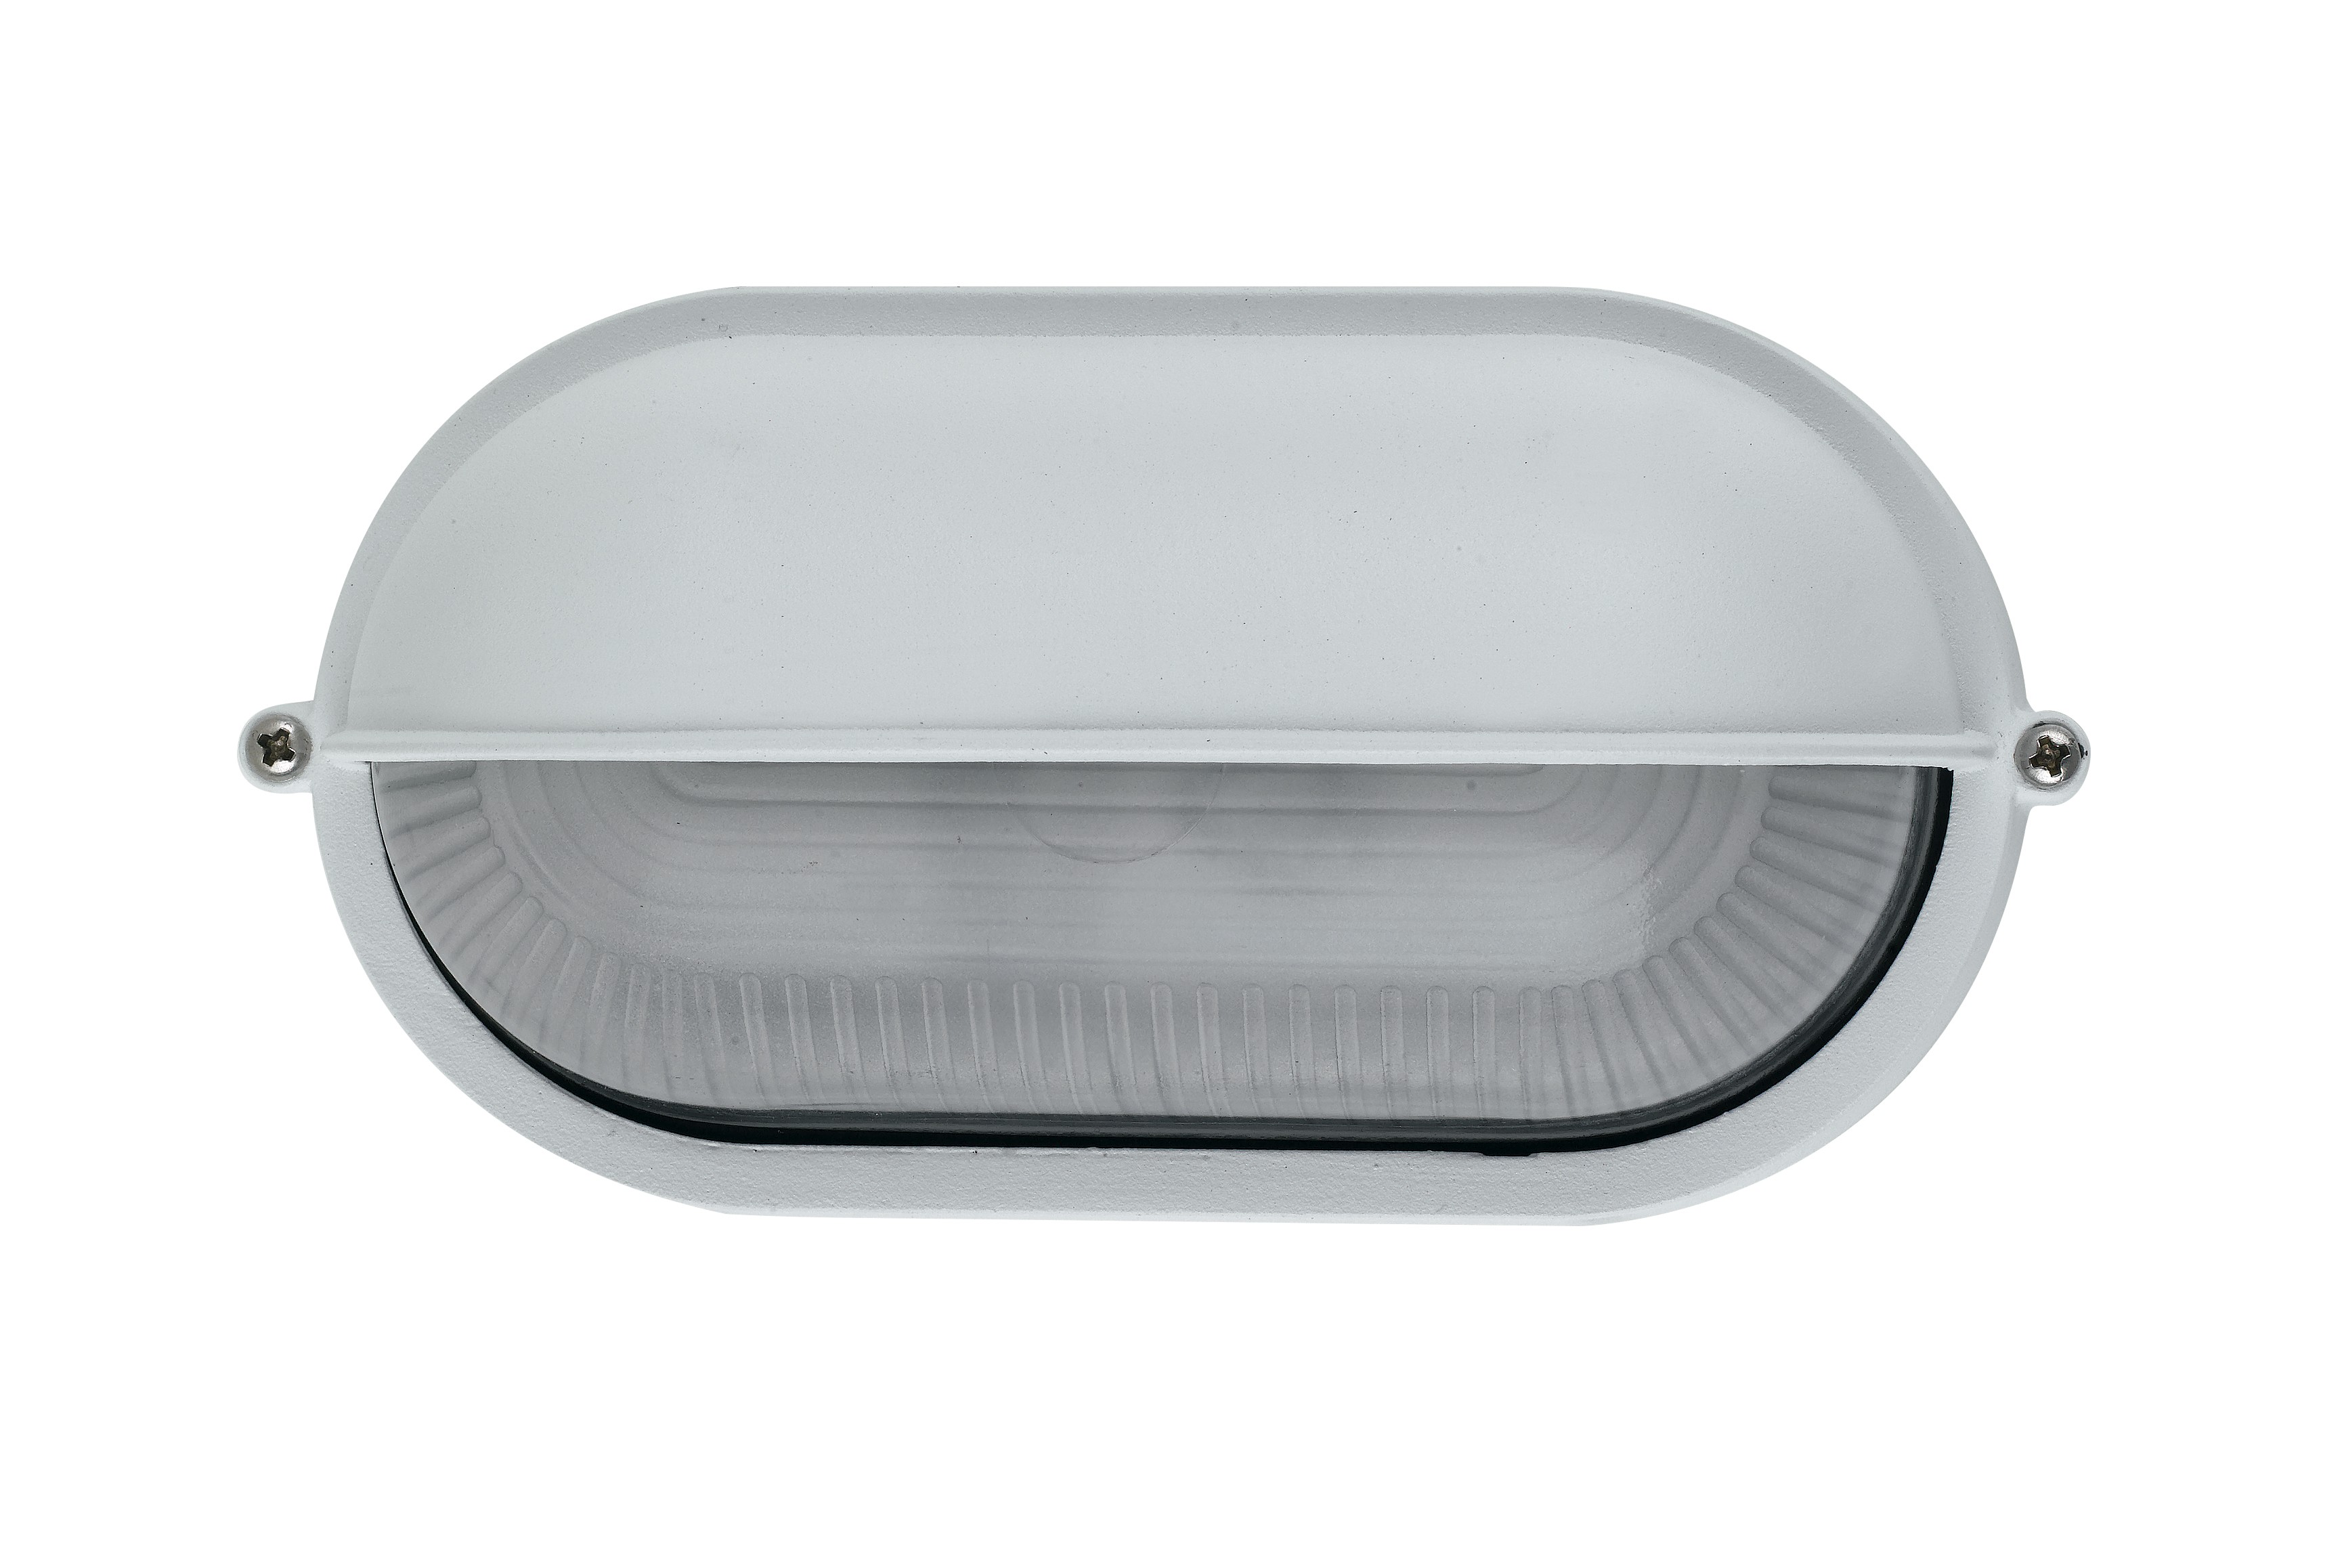 Plafoniere Per Box : I ibiza sd bco fan europe lighting plafoniera per